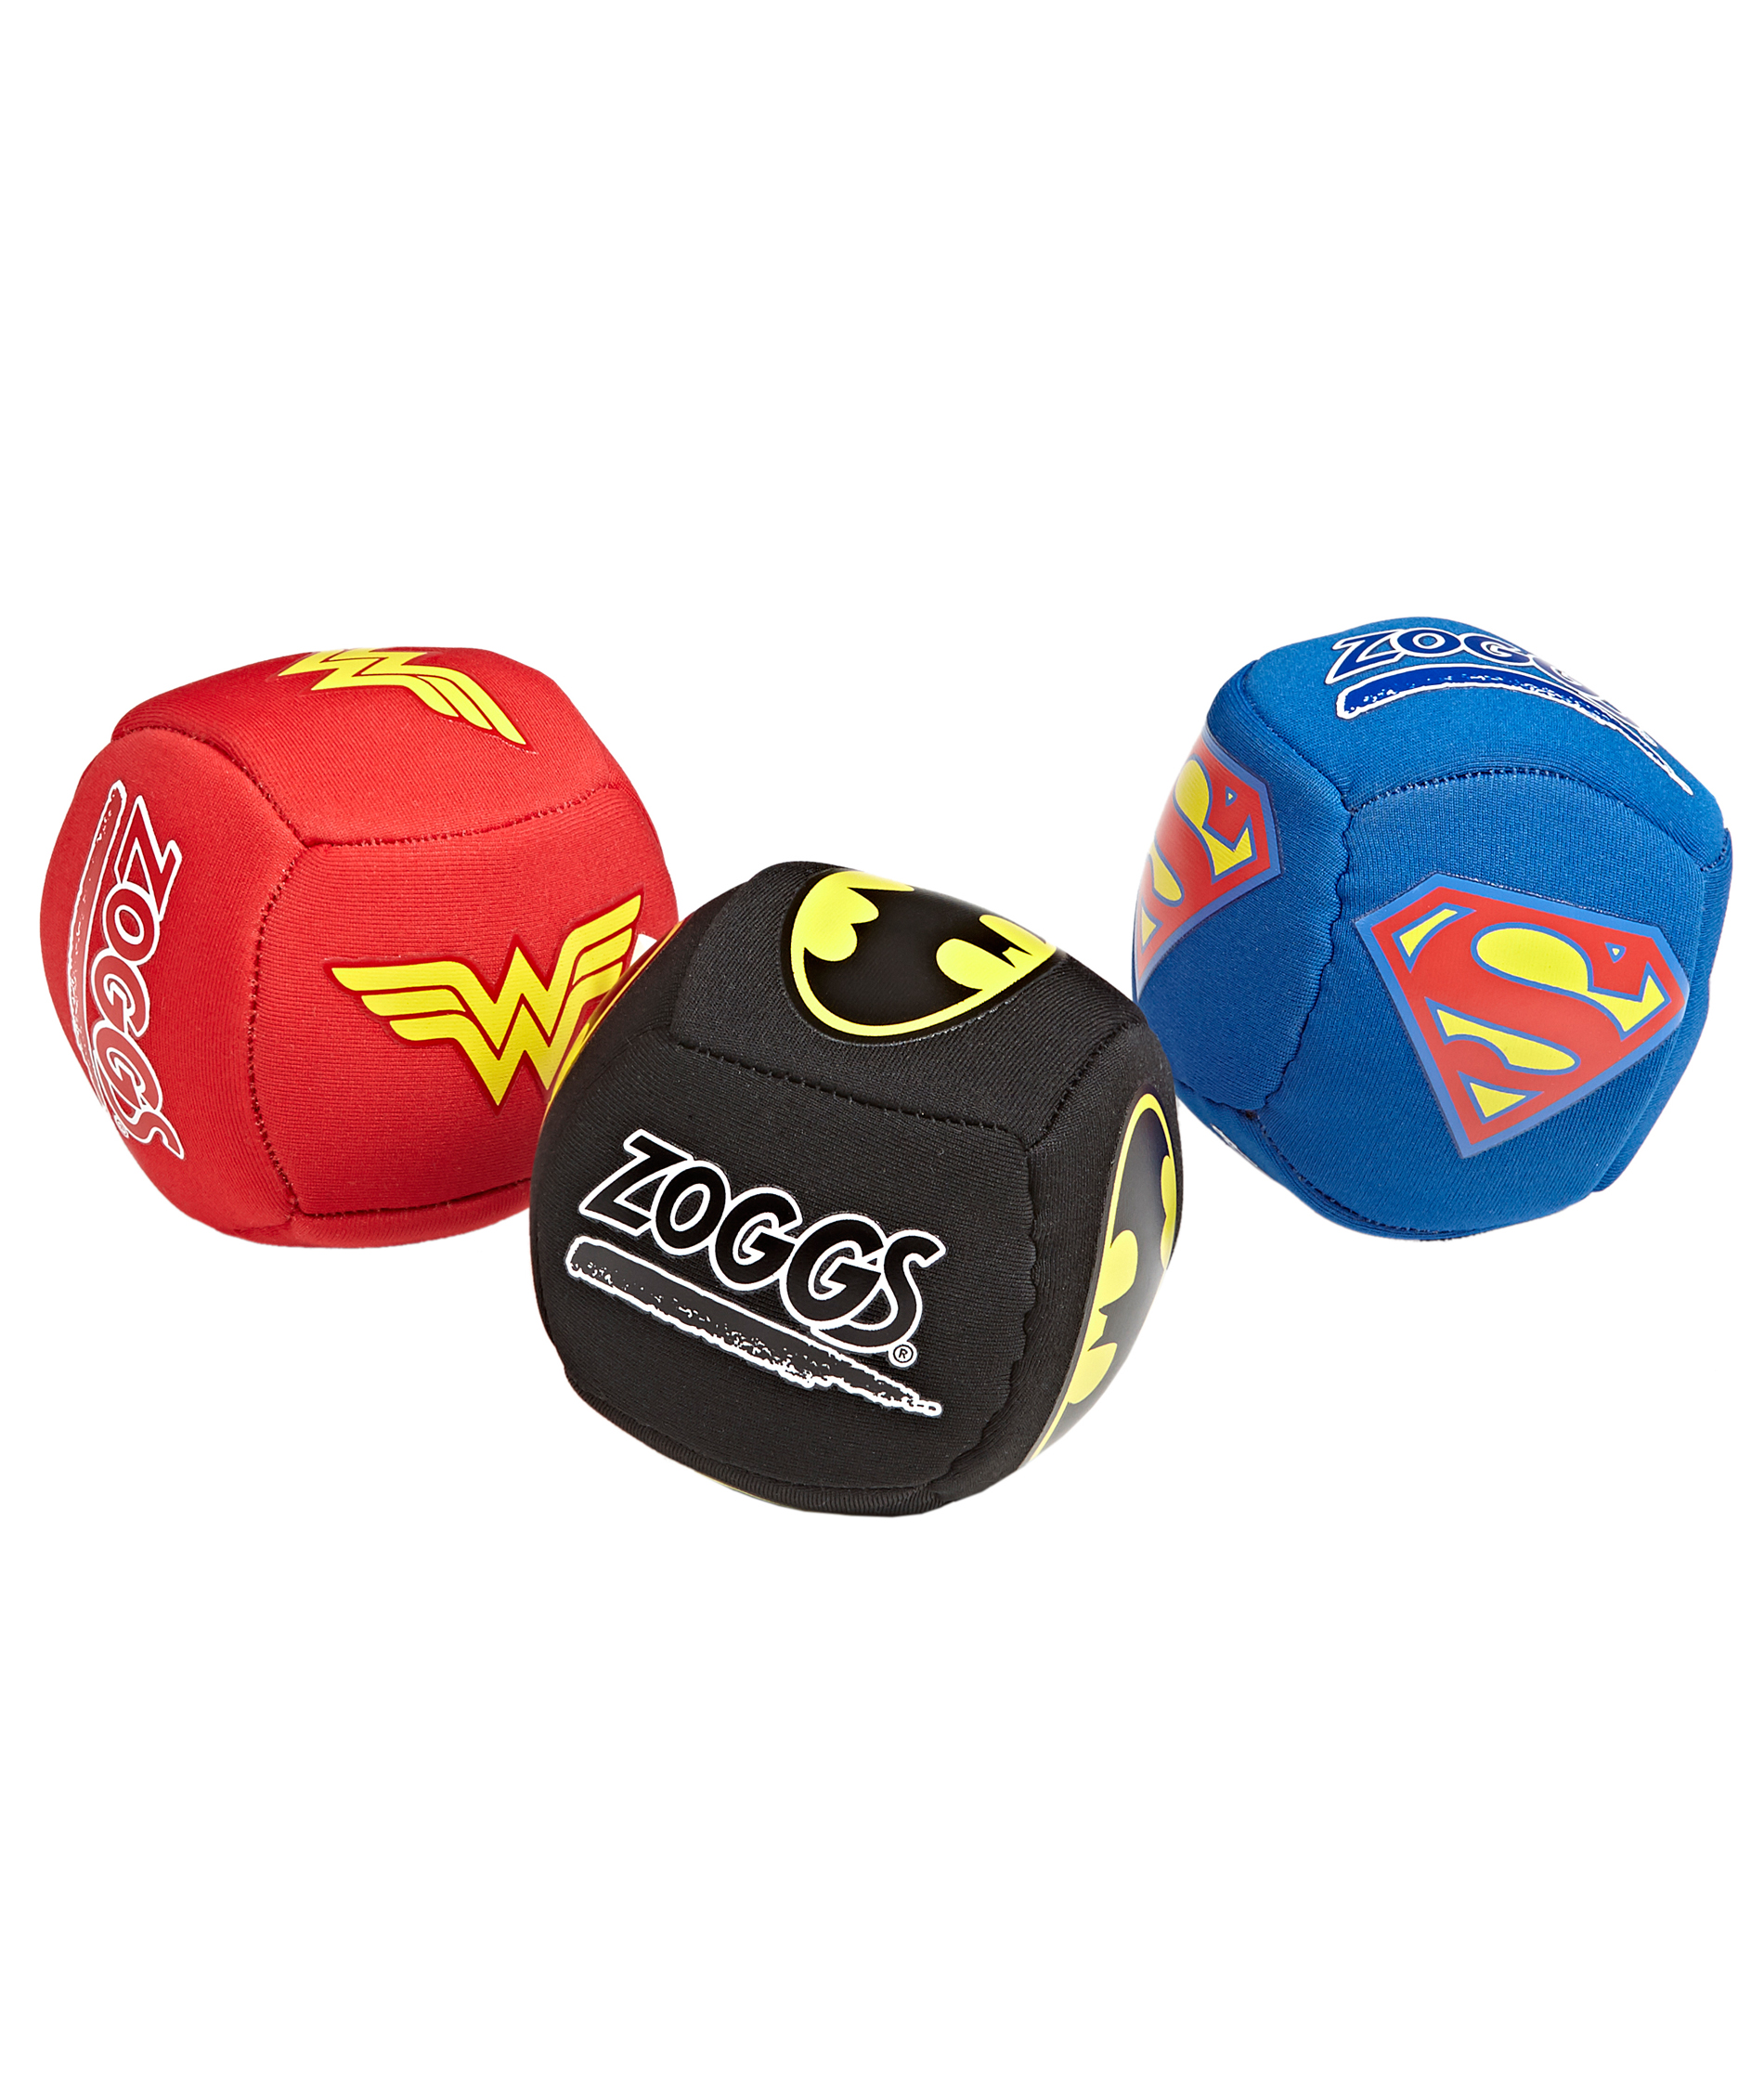 Zoggs Super Heroes Splash Balls - Assorted 3 pack